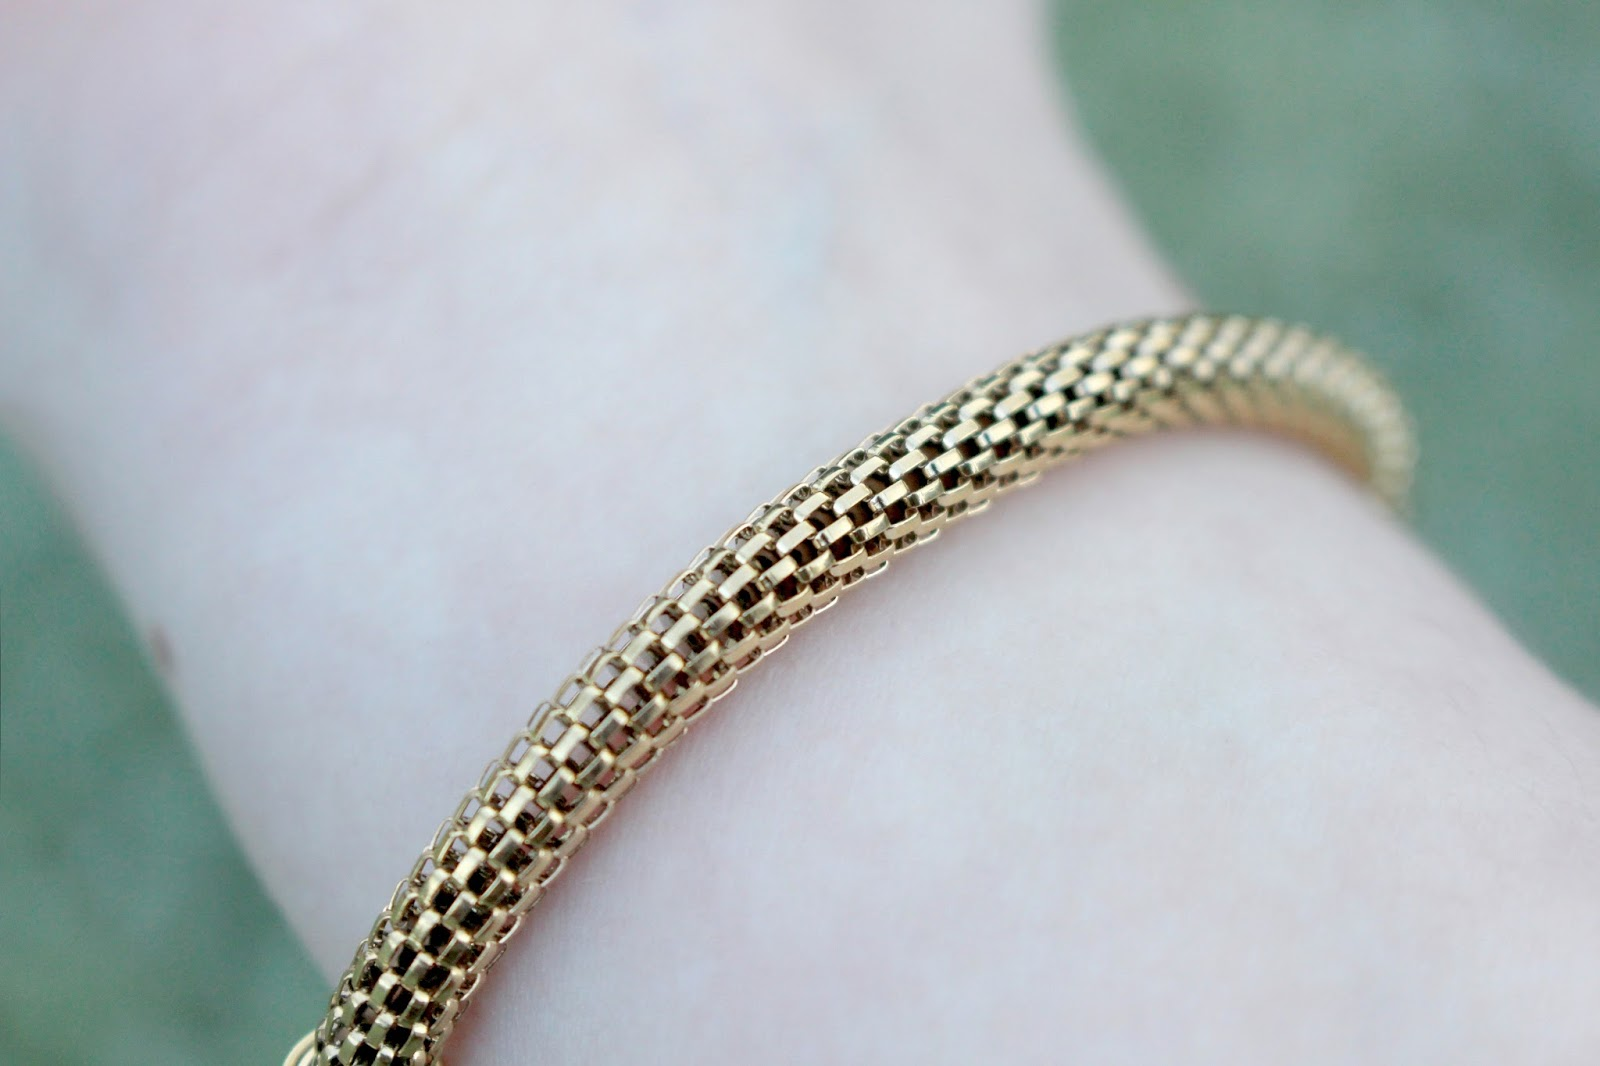 Calvin Klein Impulsive Gold Bracelet Review